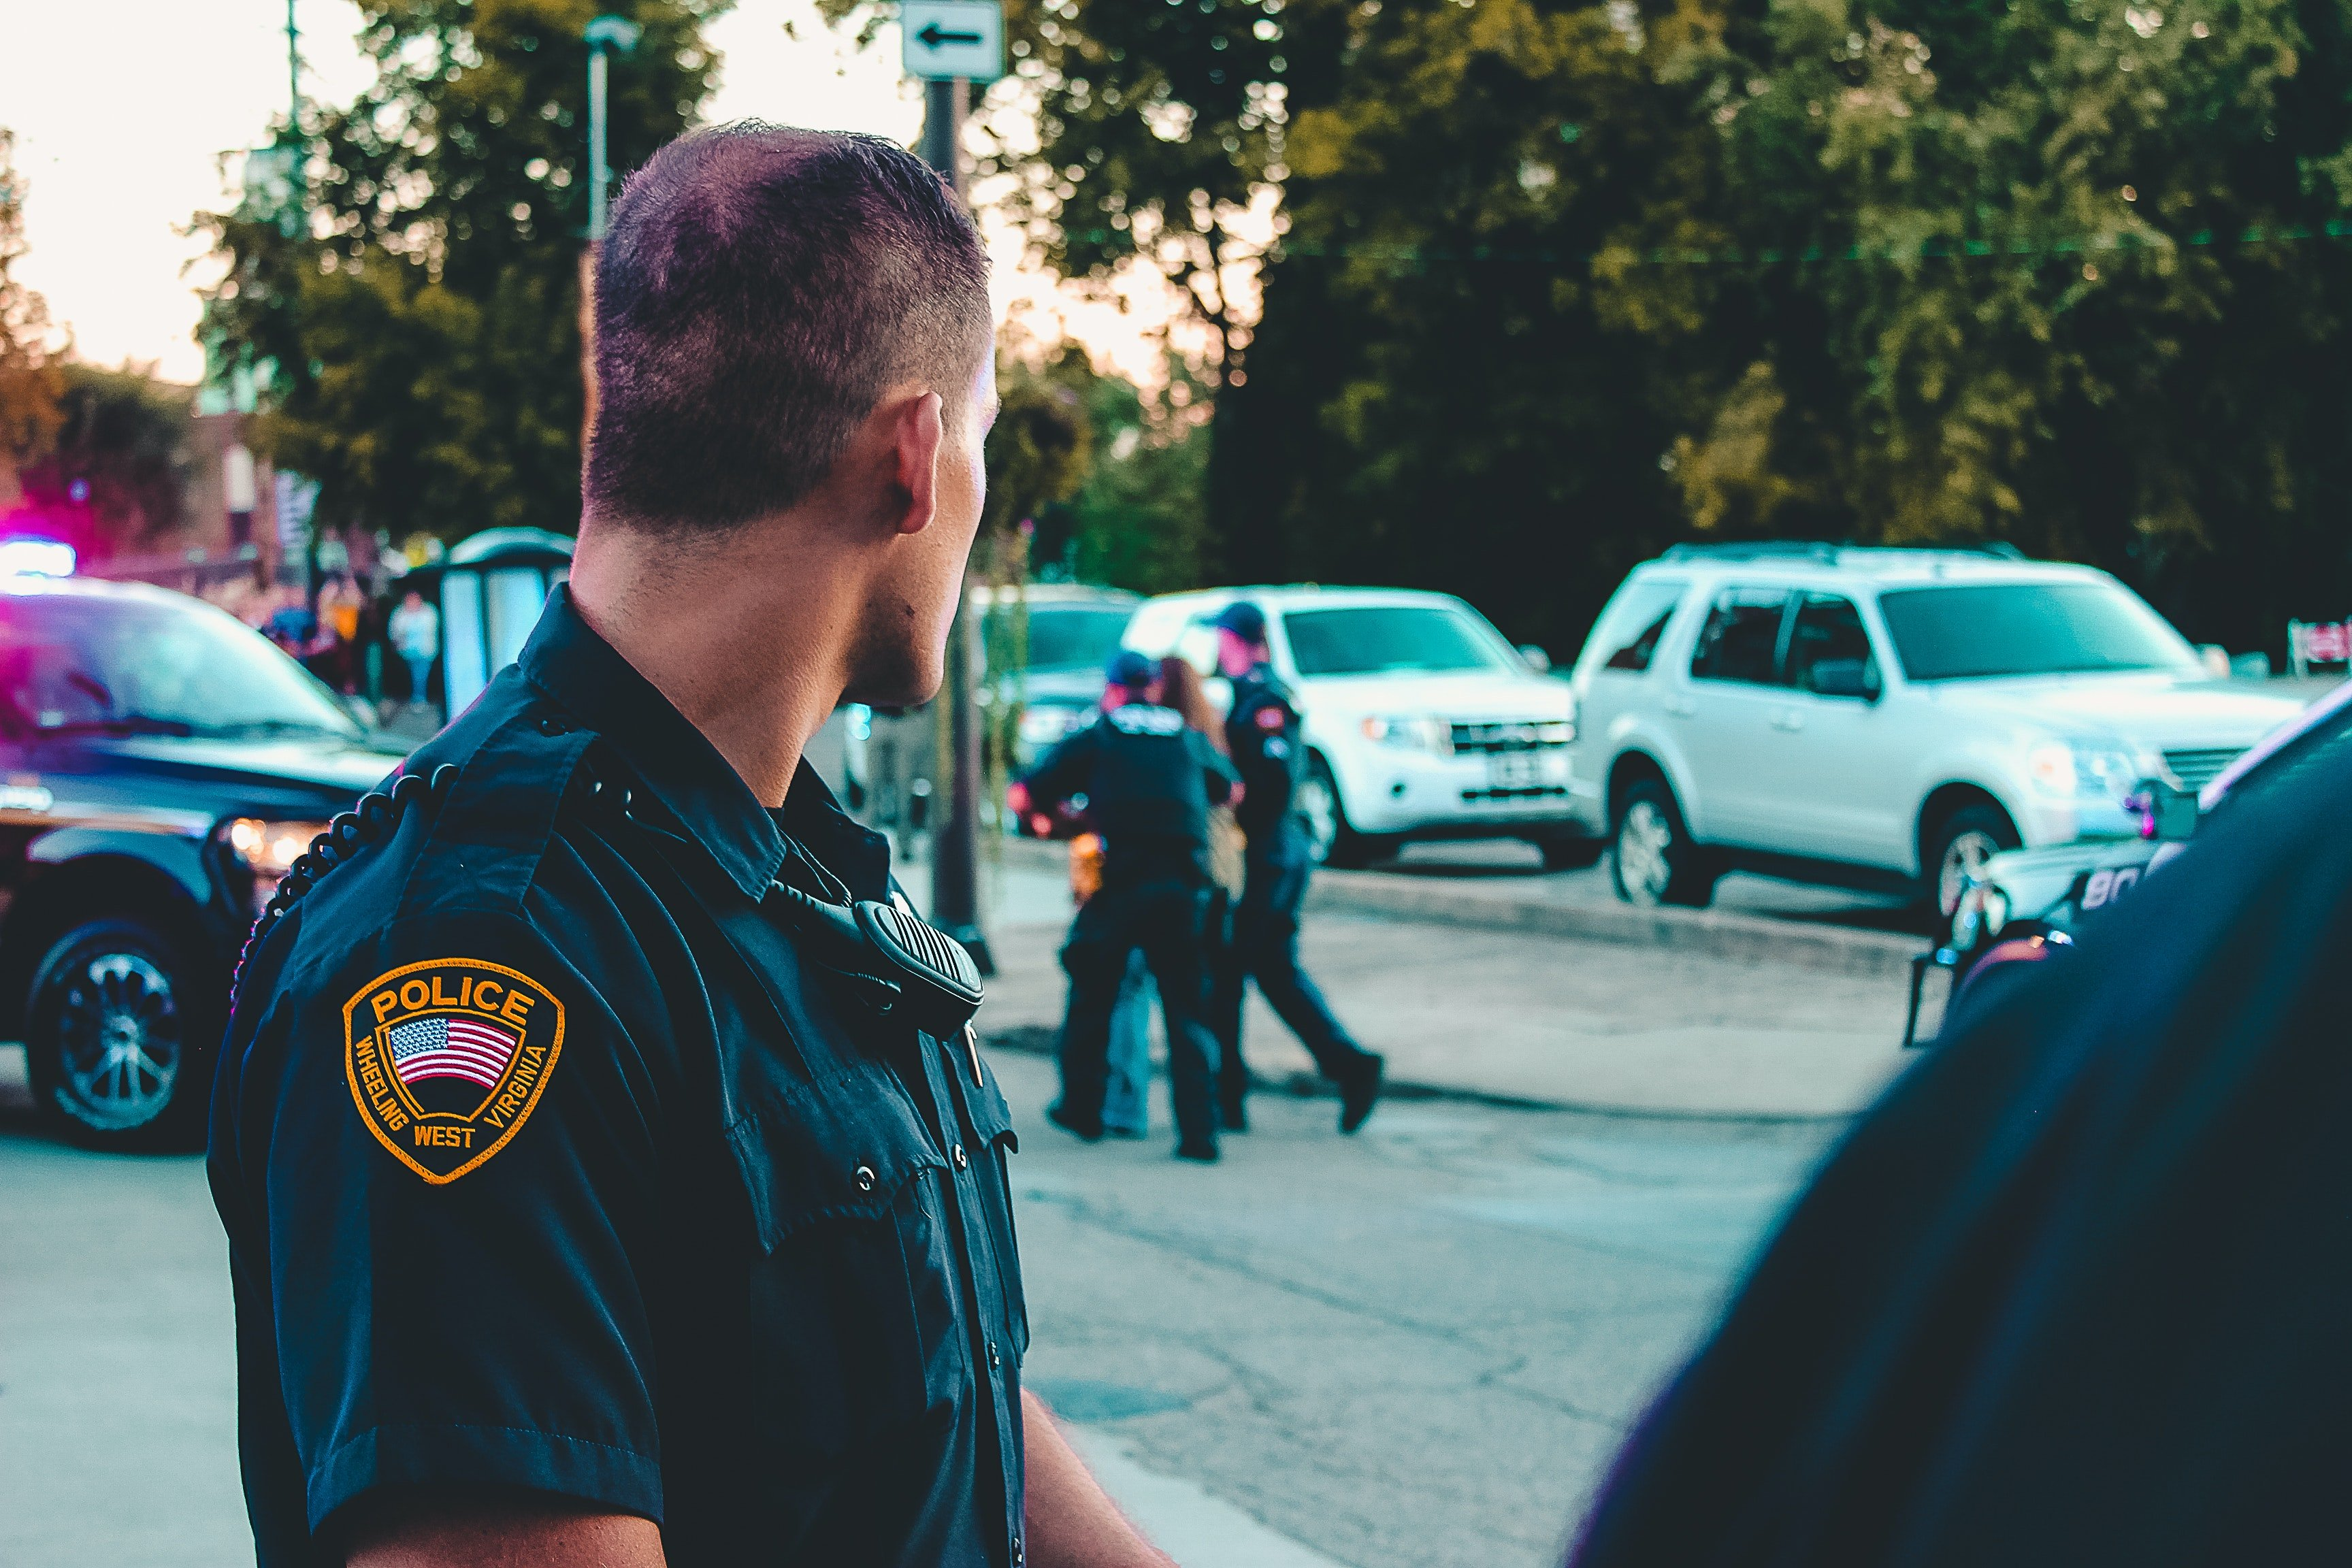 A police officer look back towards a vehicle behind him.   Pexels/ Rosemary Ketchum